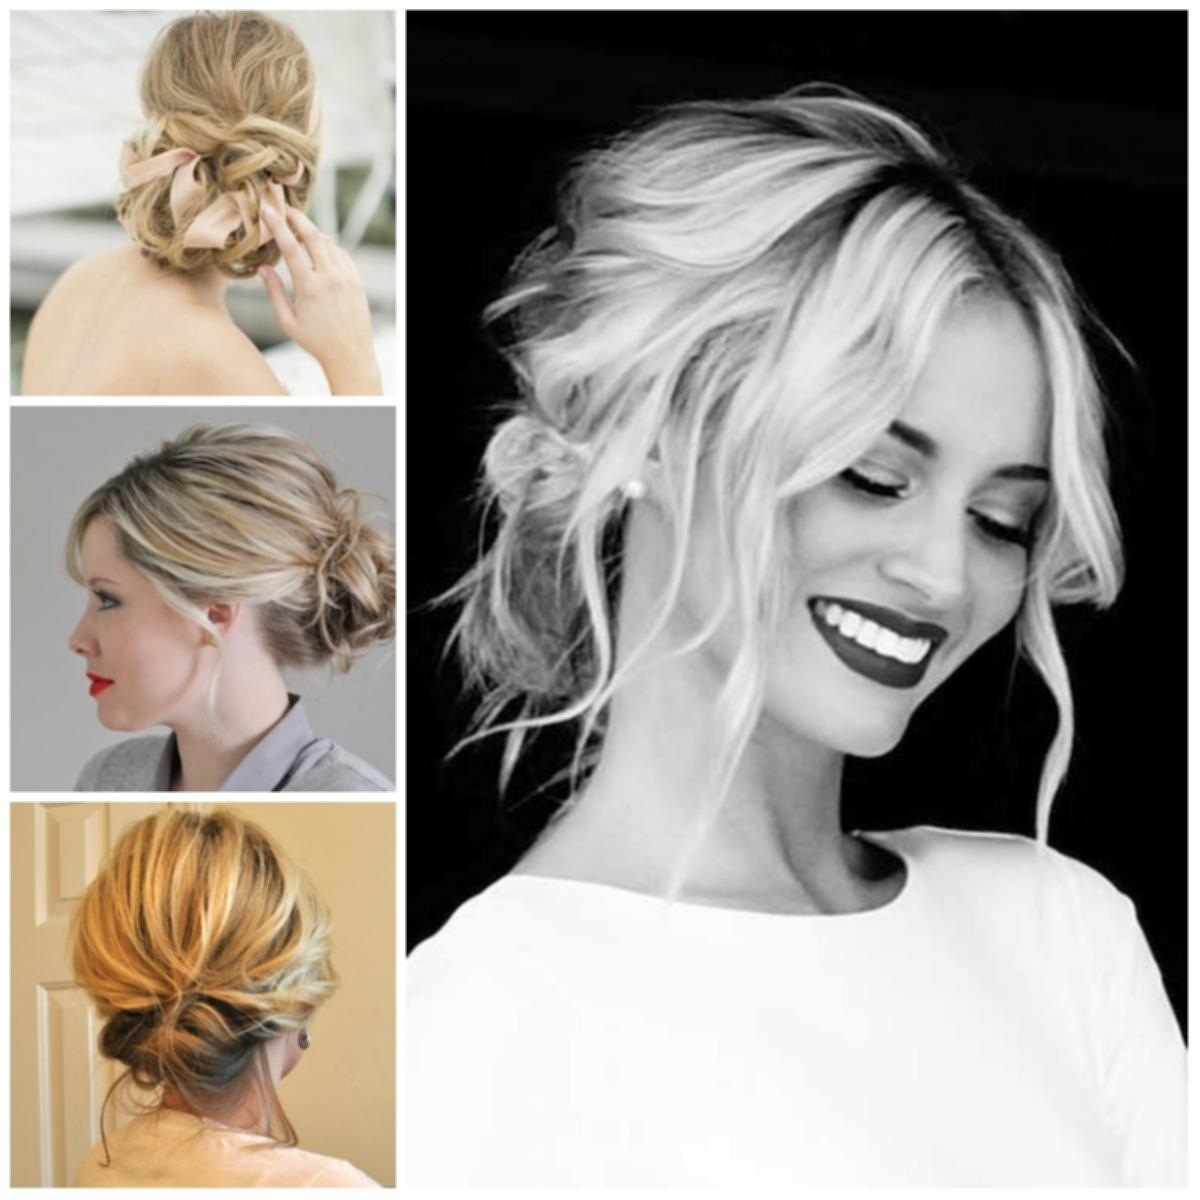 Updo Hairstyles For Medium Hair Best Updos For Medium Length Hair With Regard To Updo Hairstyles For Shoulder Length Hair (View 10 of 15)